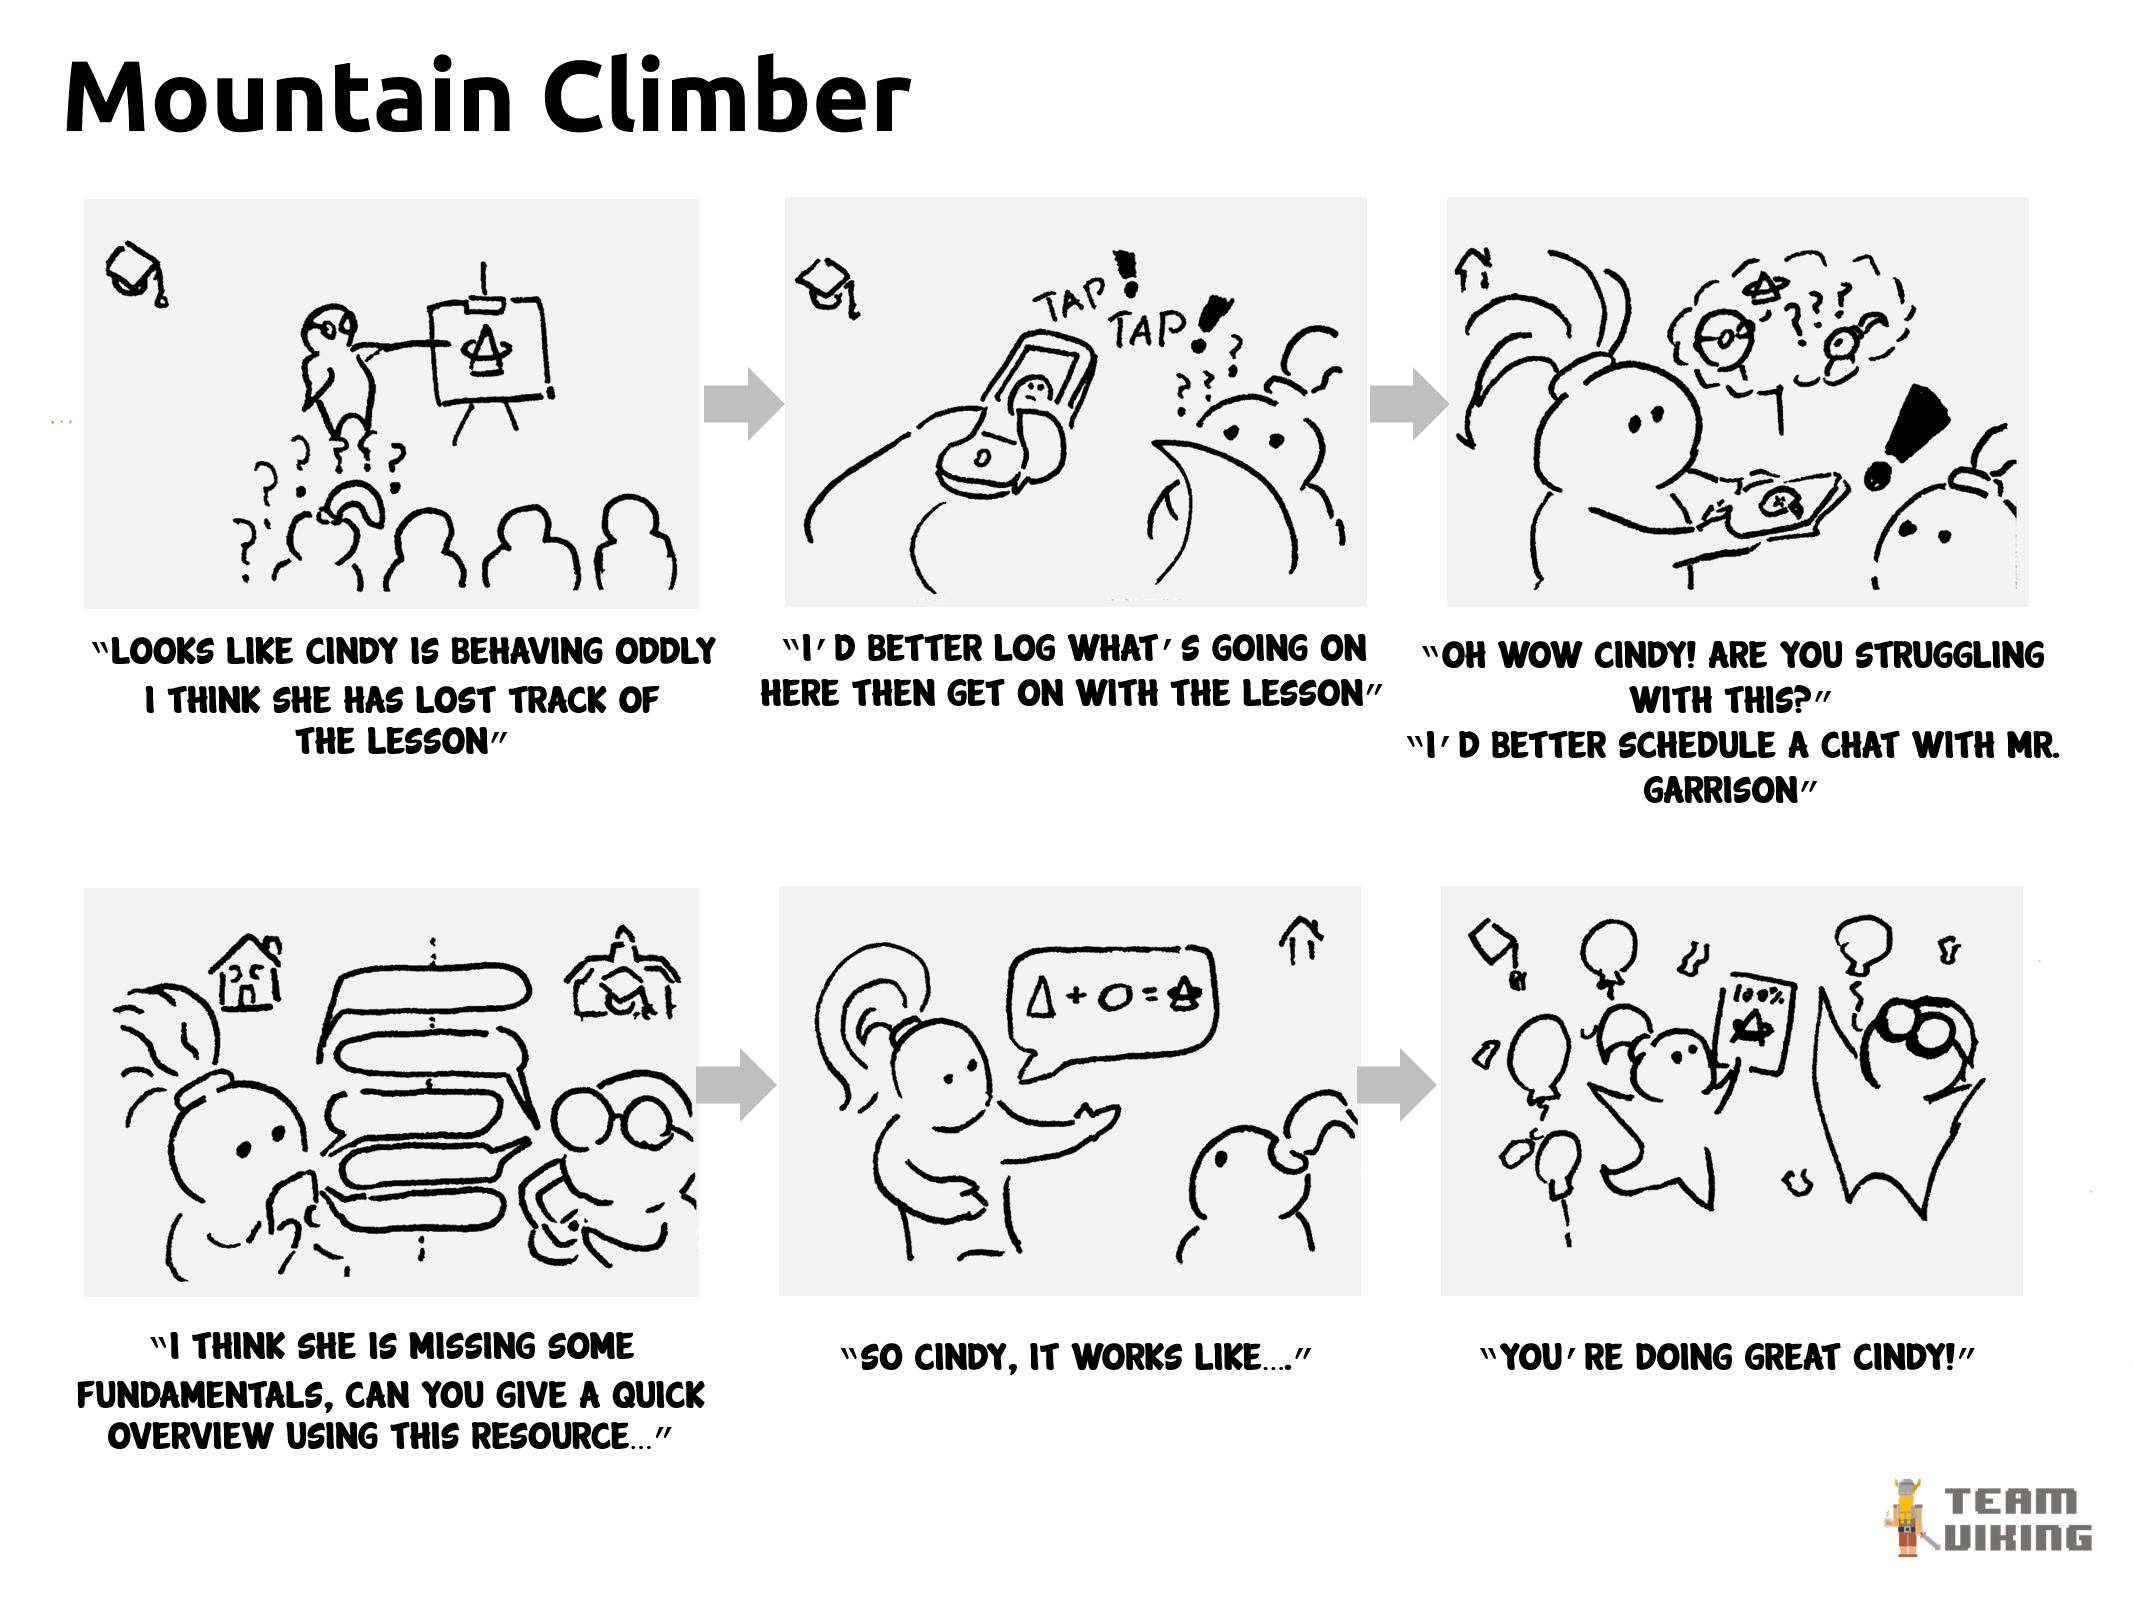 Concept poster storyboard